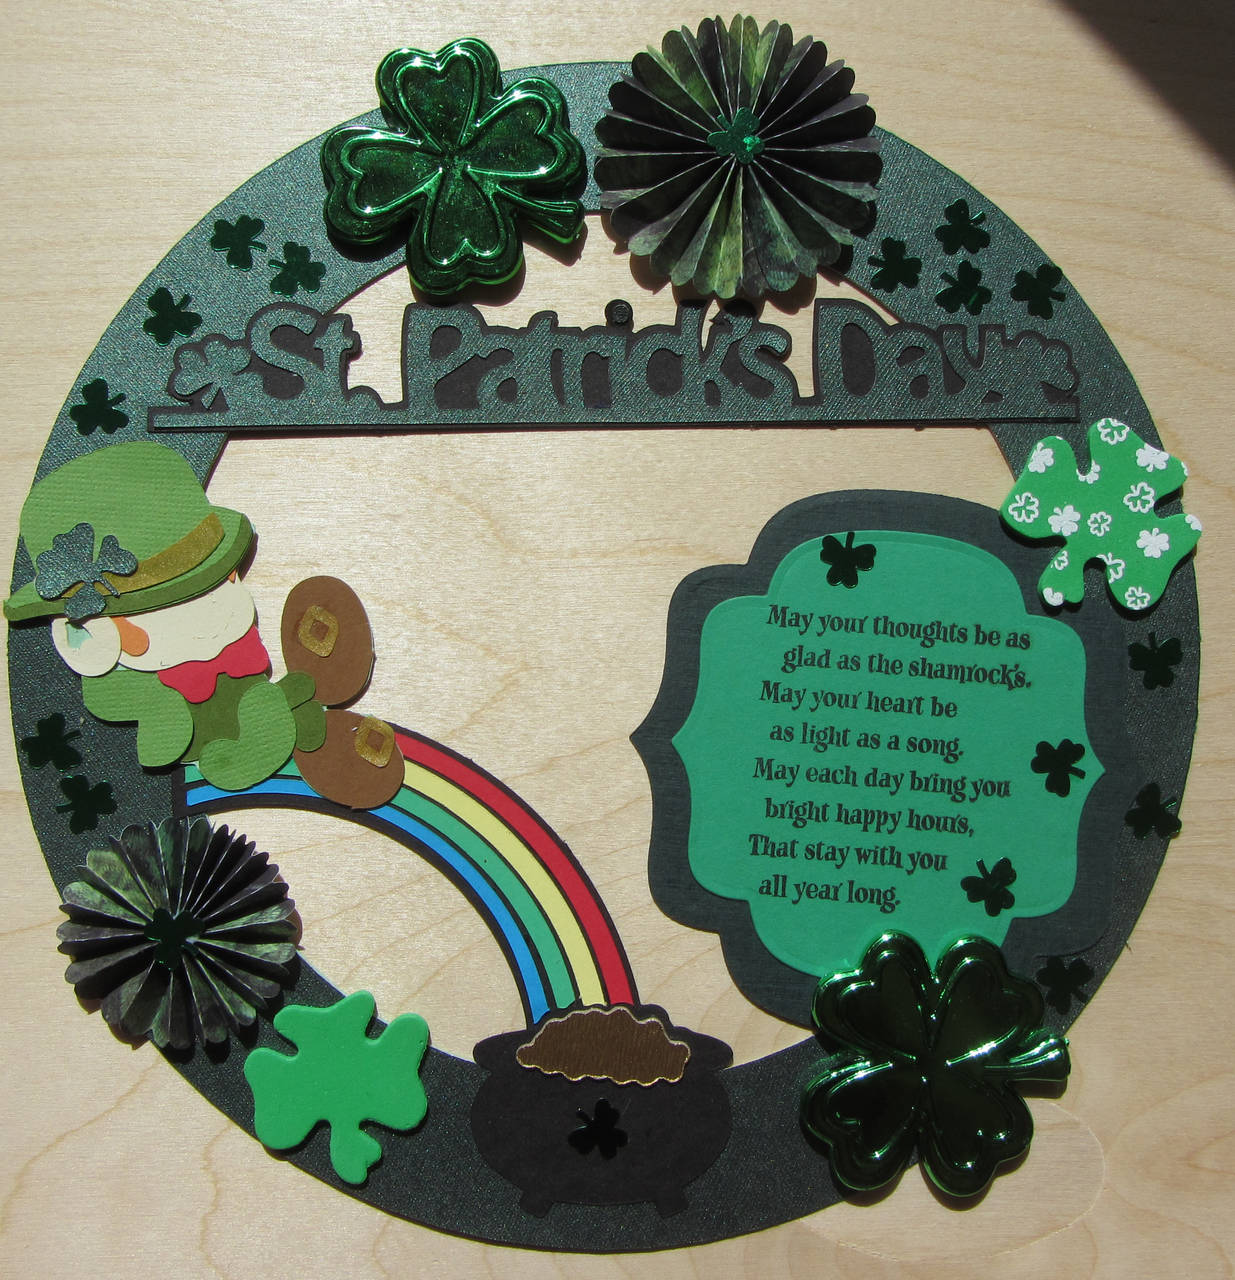 St Patricks Wreath for my Daughter in NYC